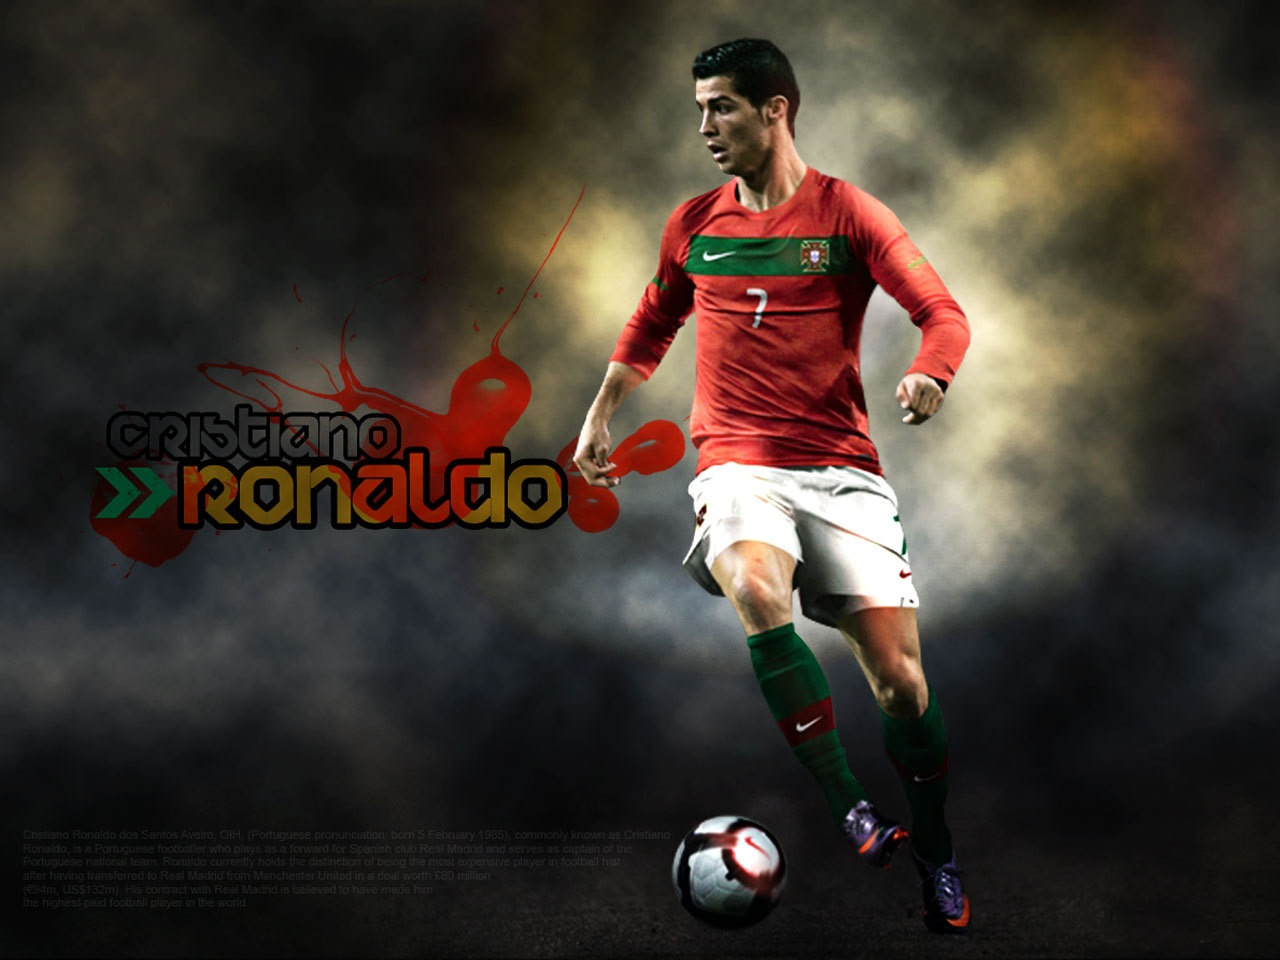 Pitbull Wallpapers 3d Cristiano Ronaldo Hd Wallpapers 2012 2013 All About Hd